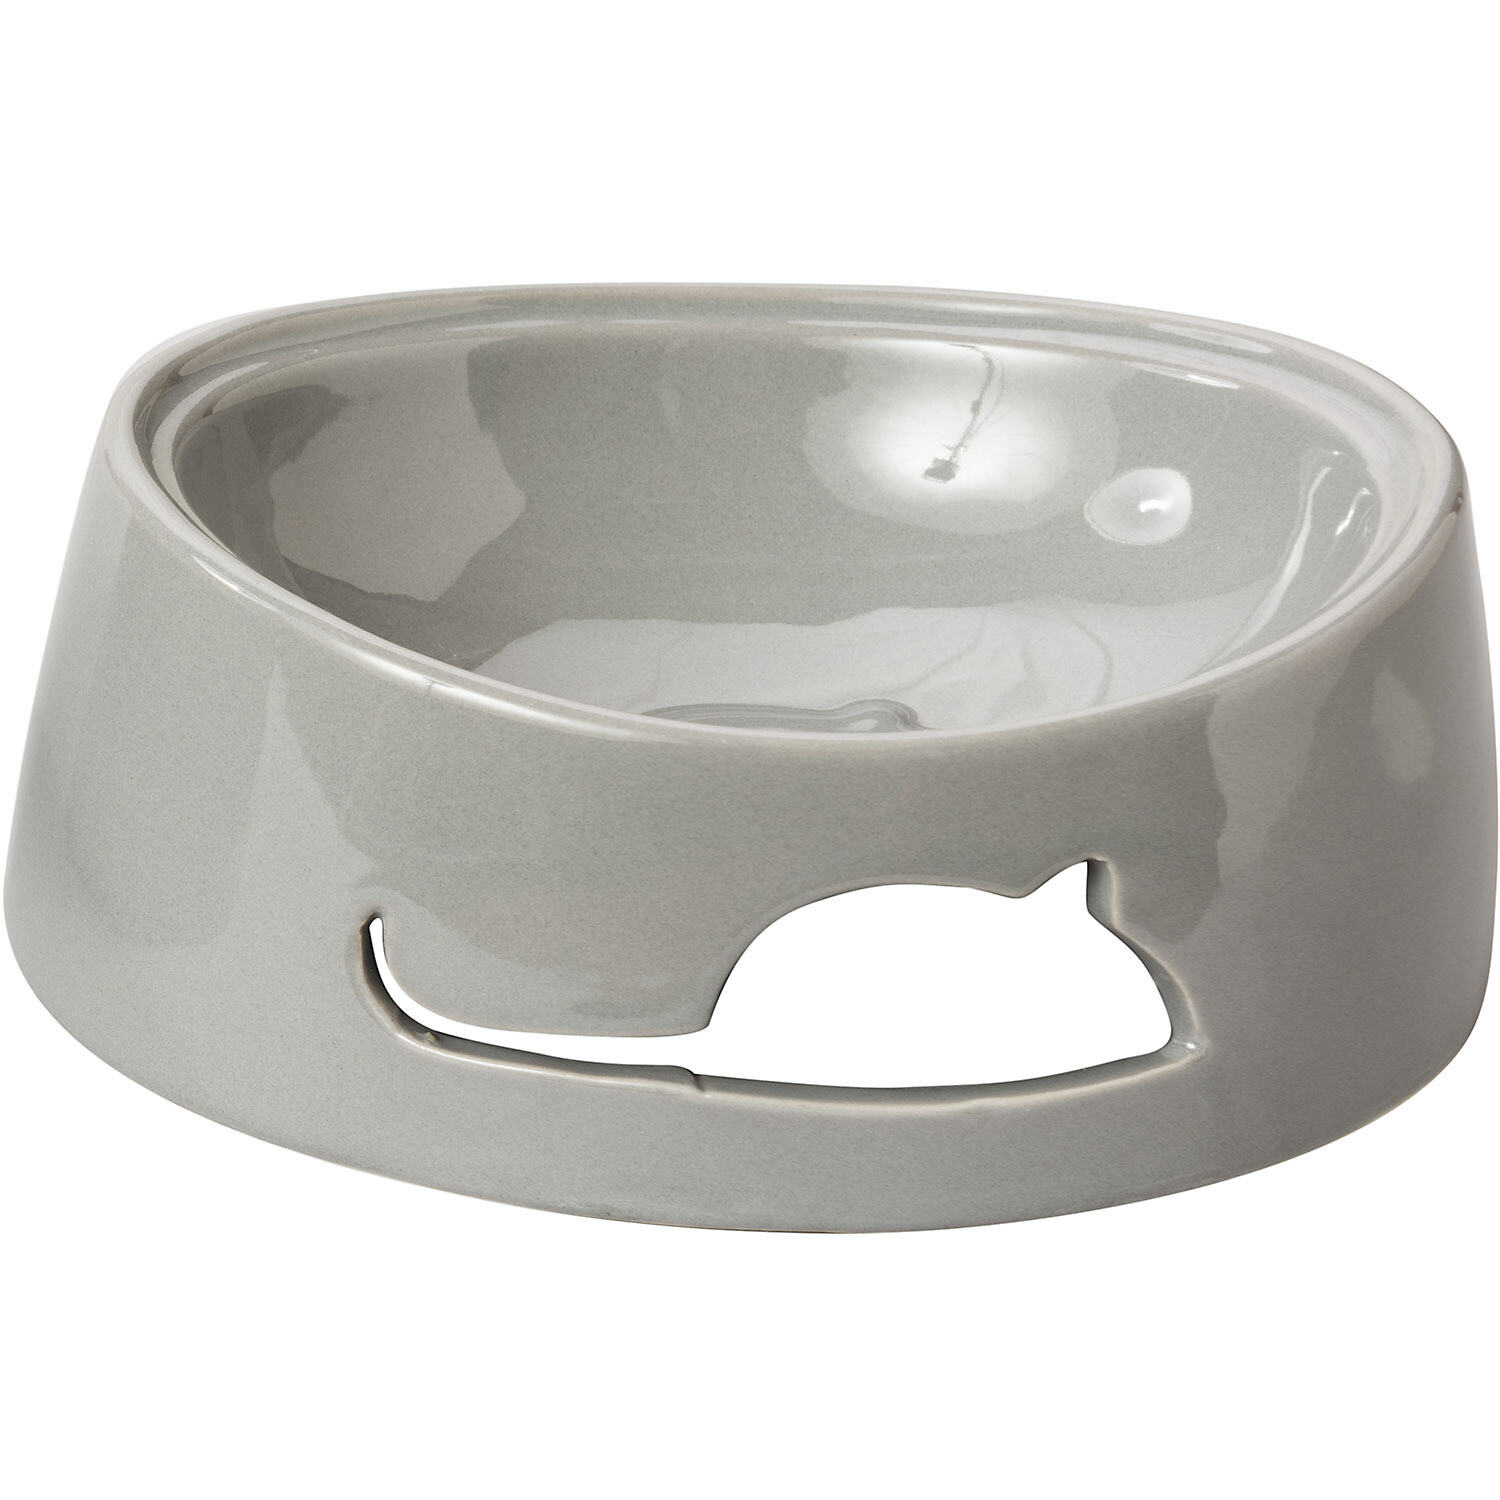 Bailey Mouse Cat Dish - Gray